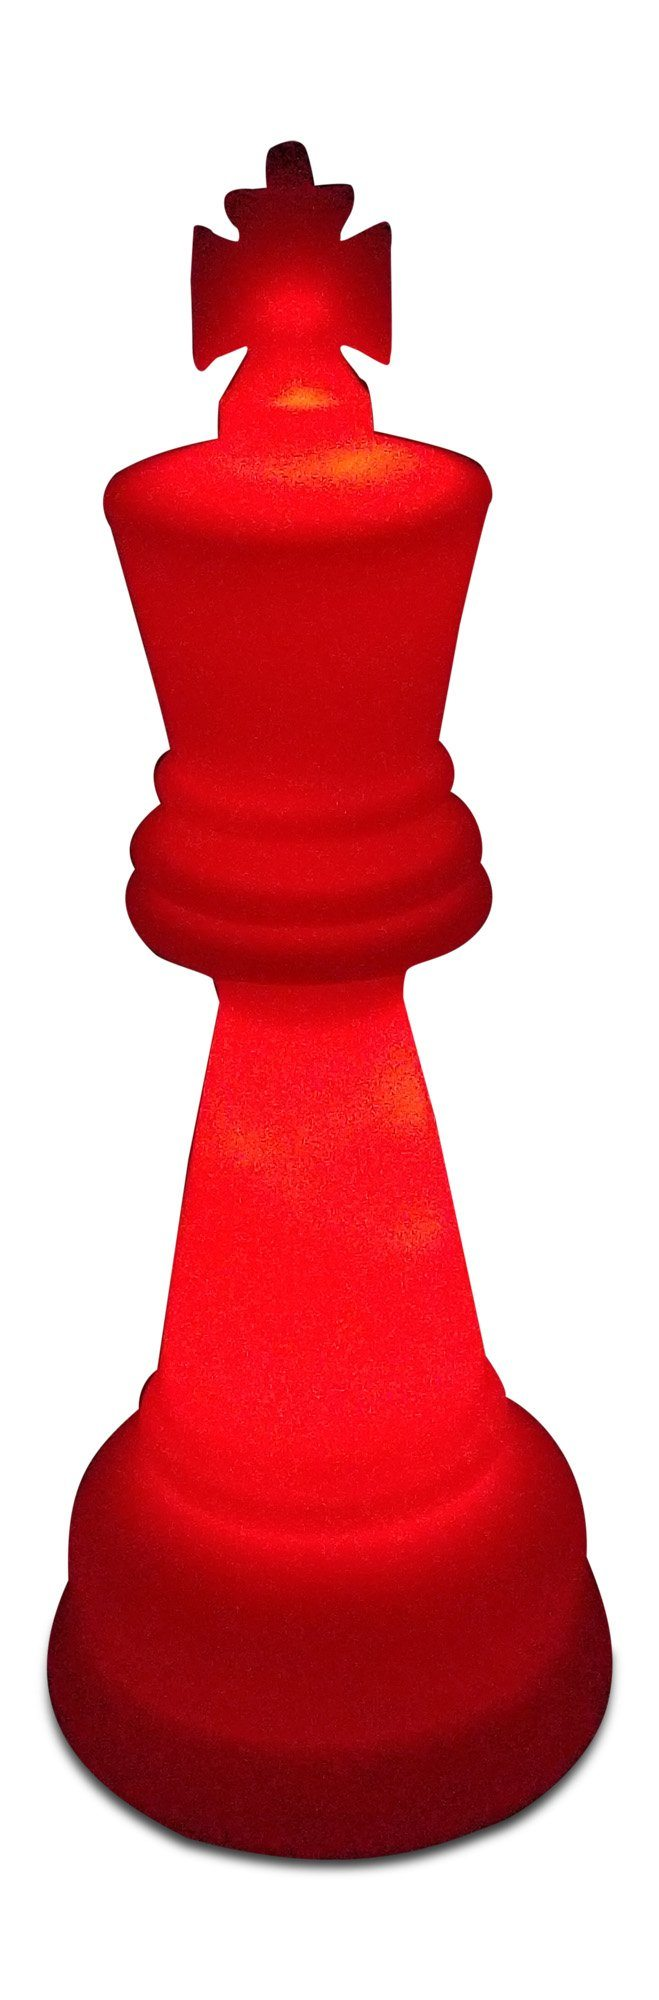 MegaChess 26 Inch Perfect King Light-Up Giant Chess Piece - Red |  | MegaChess.com